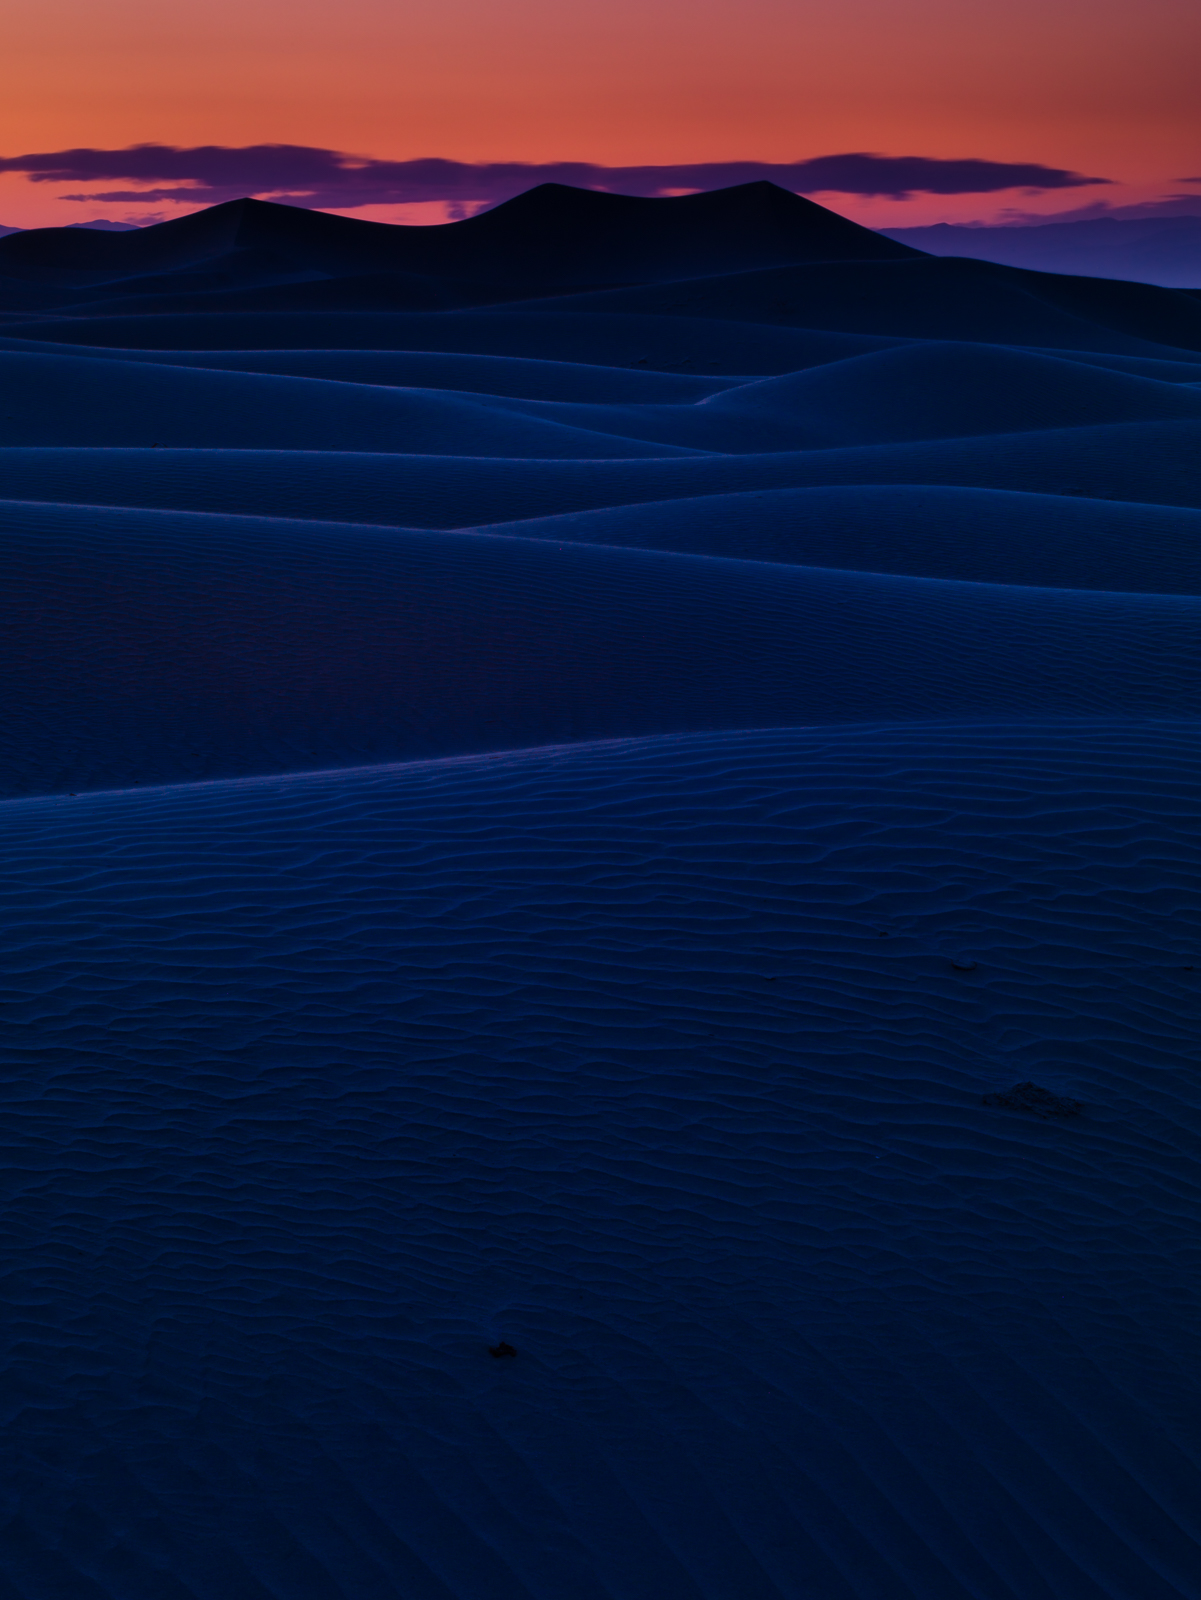 Blue Sand Sunset,California,Desert,Dunes,Orange,landscape,vertical, photo